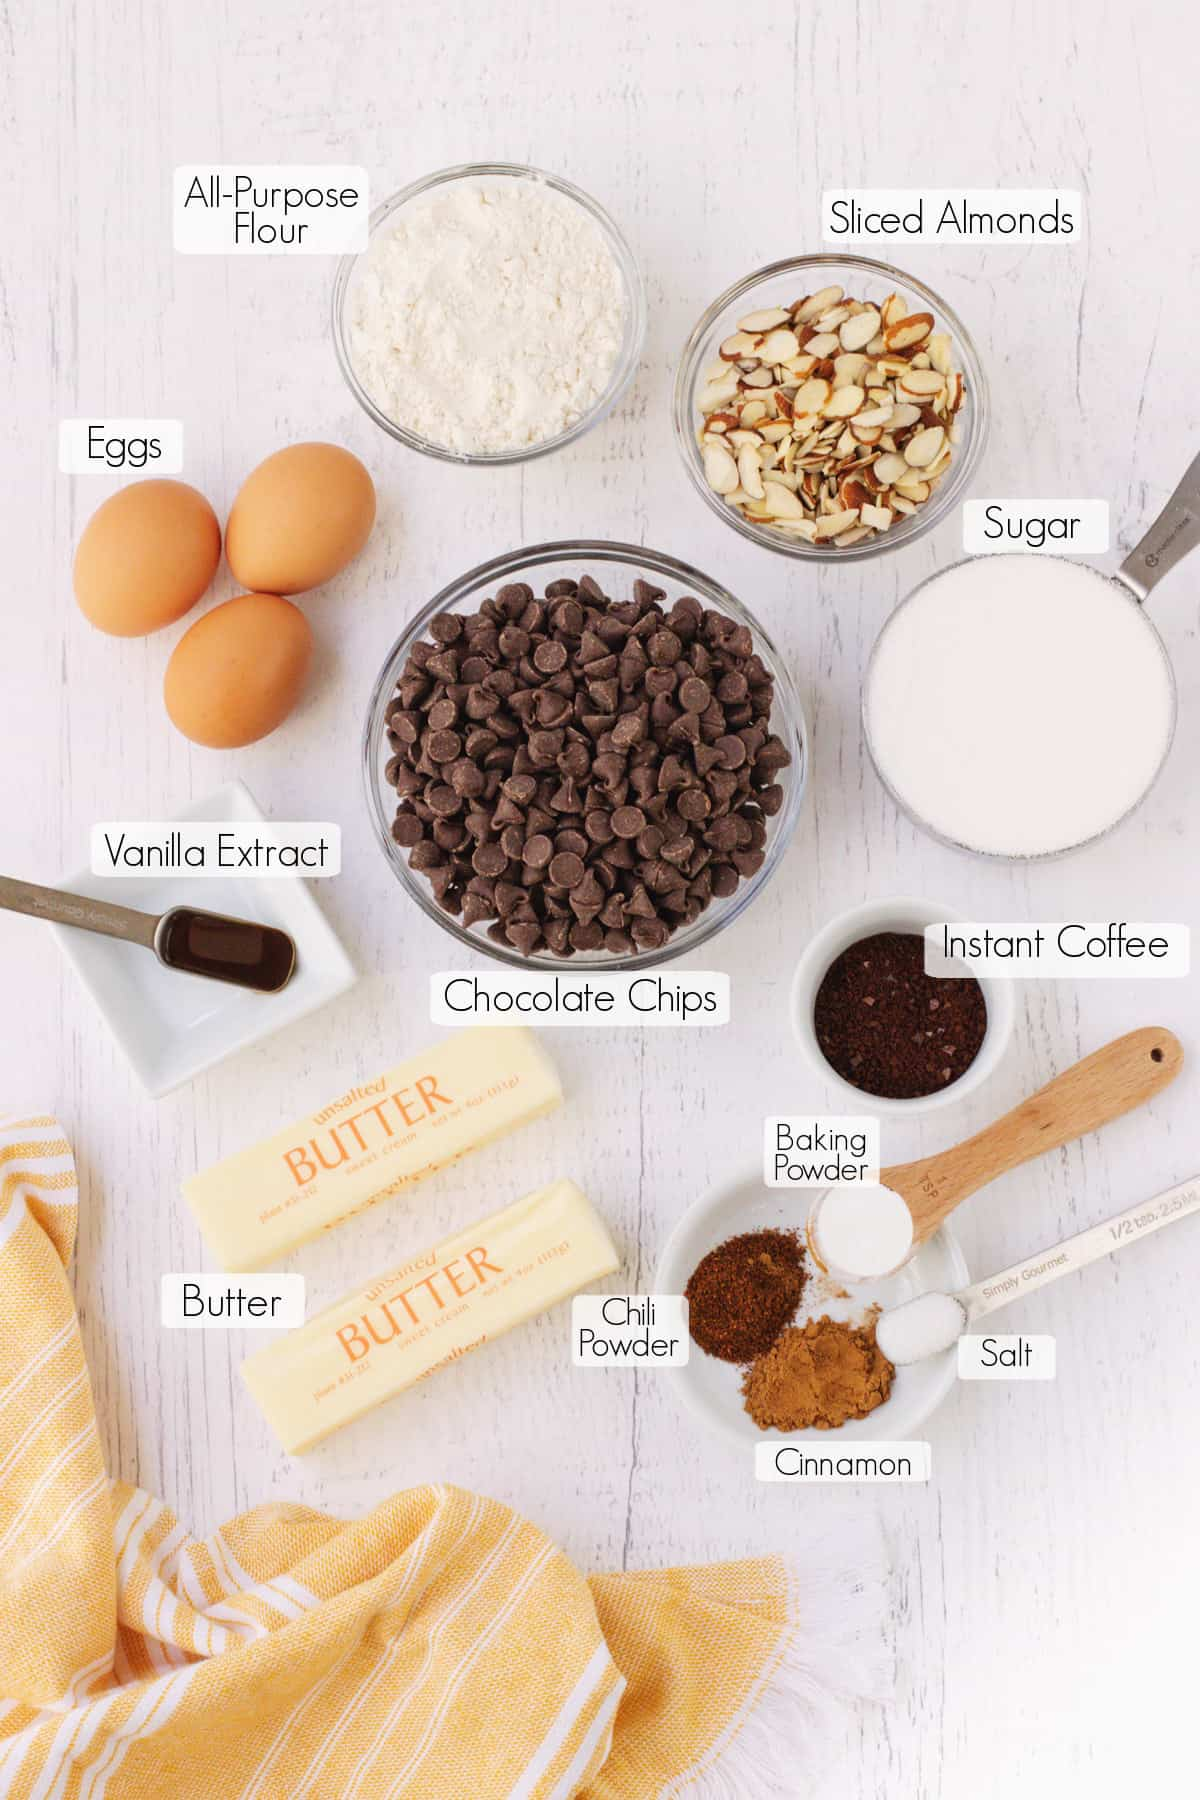 Labeled ingredients to make fudgy Mexican Brownies.